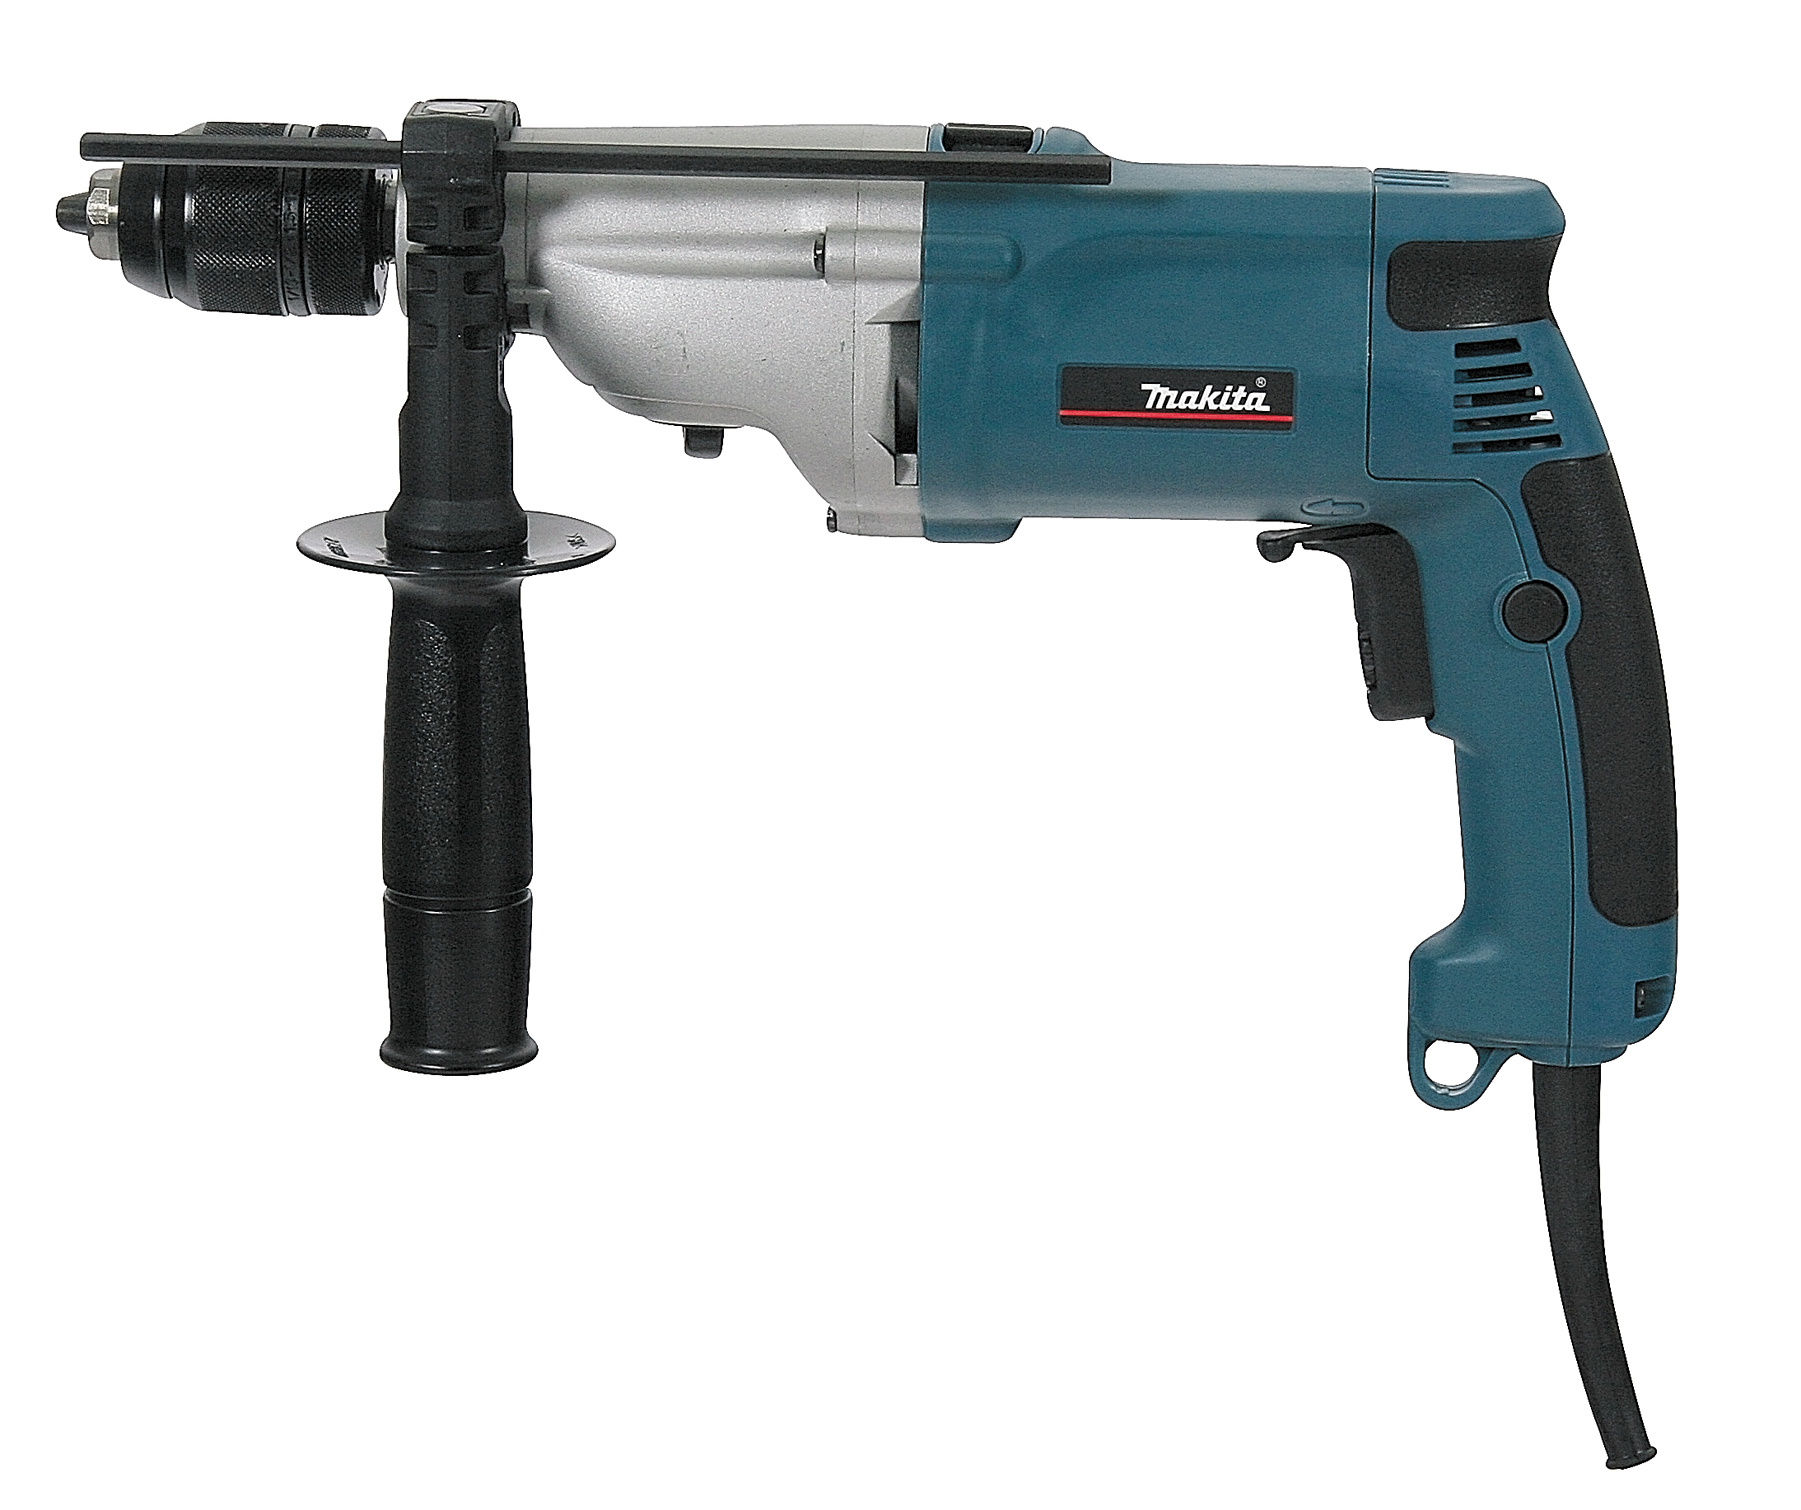 Steel Cutter South Africa: Makita Power Tools South Africa